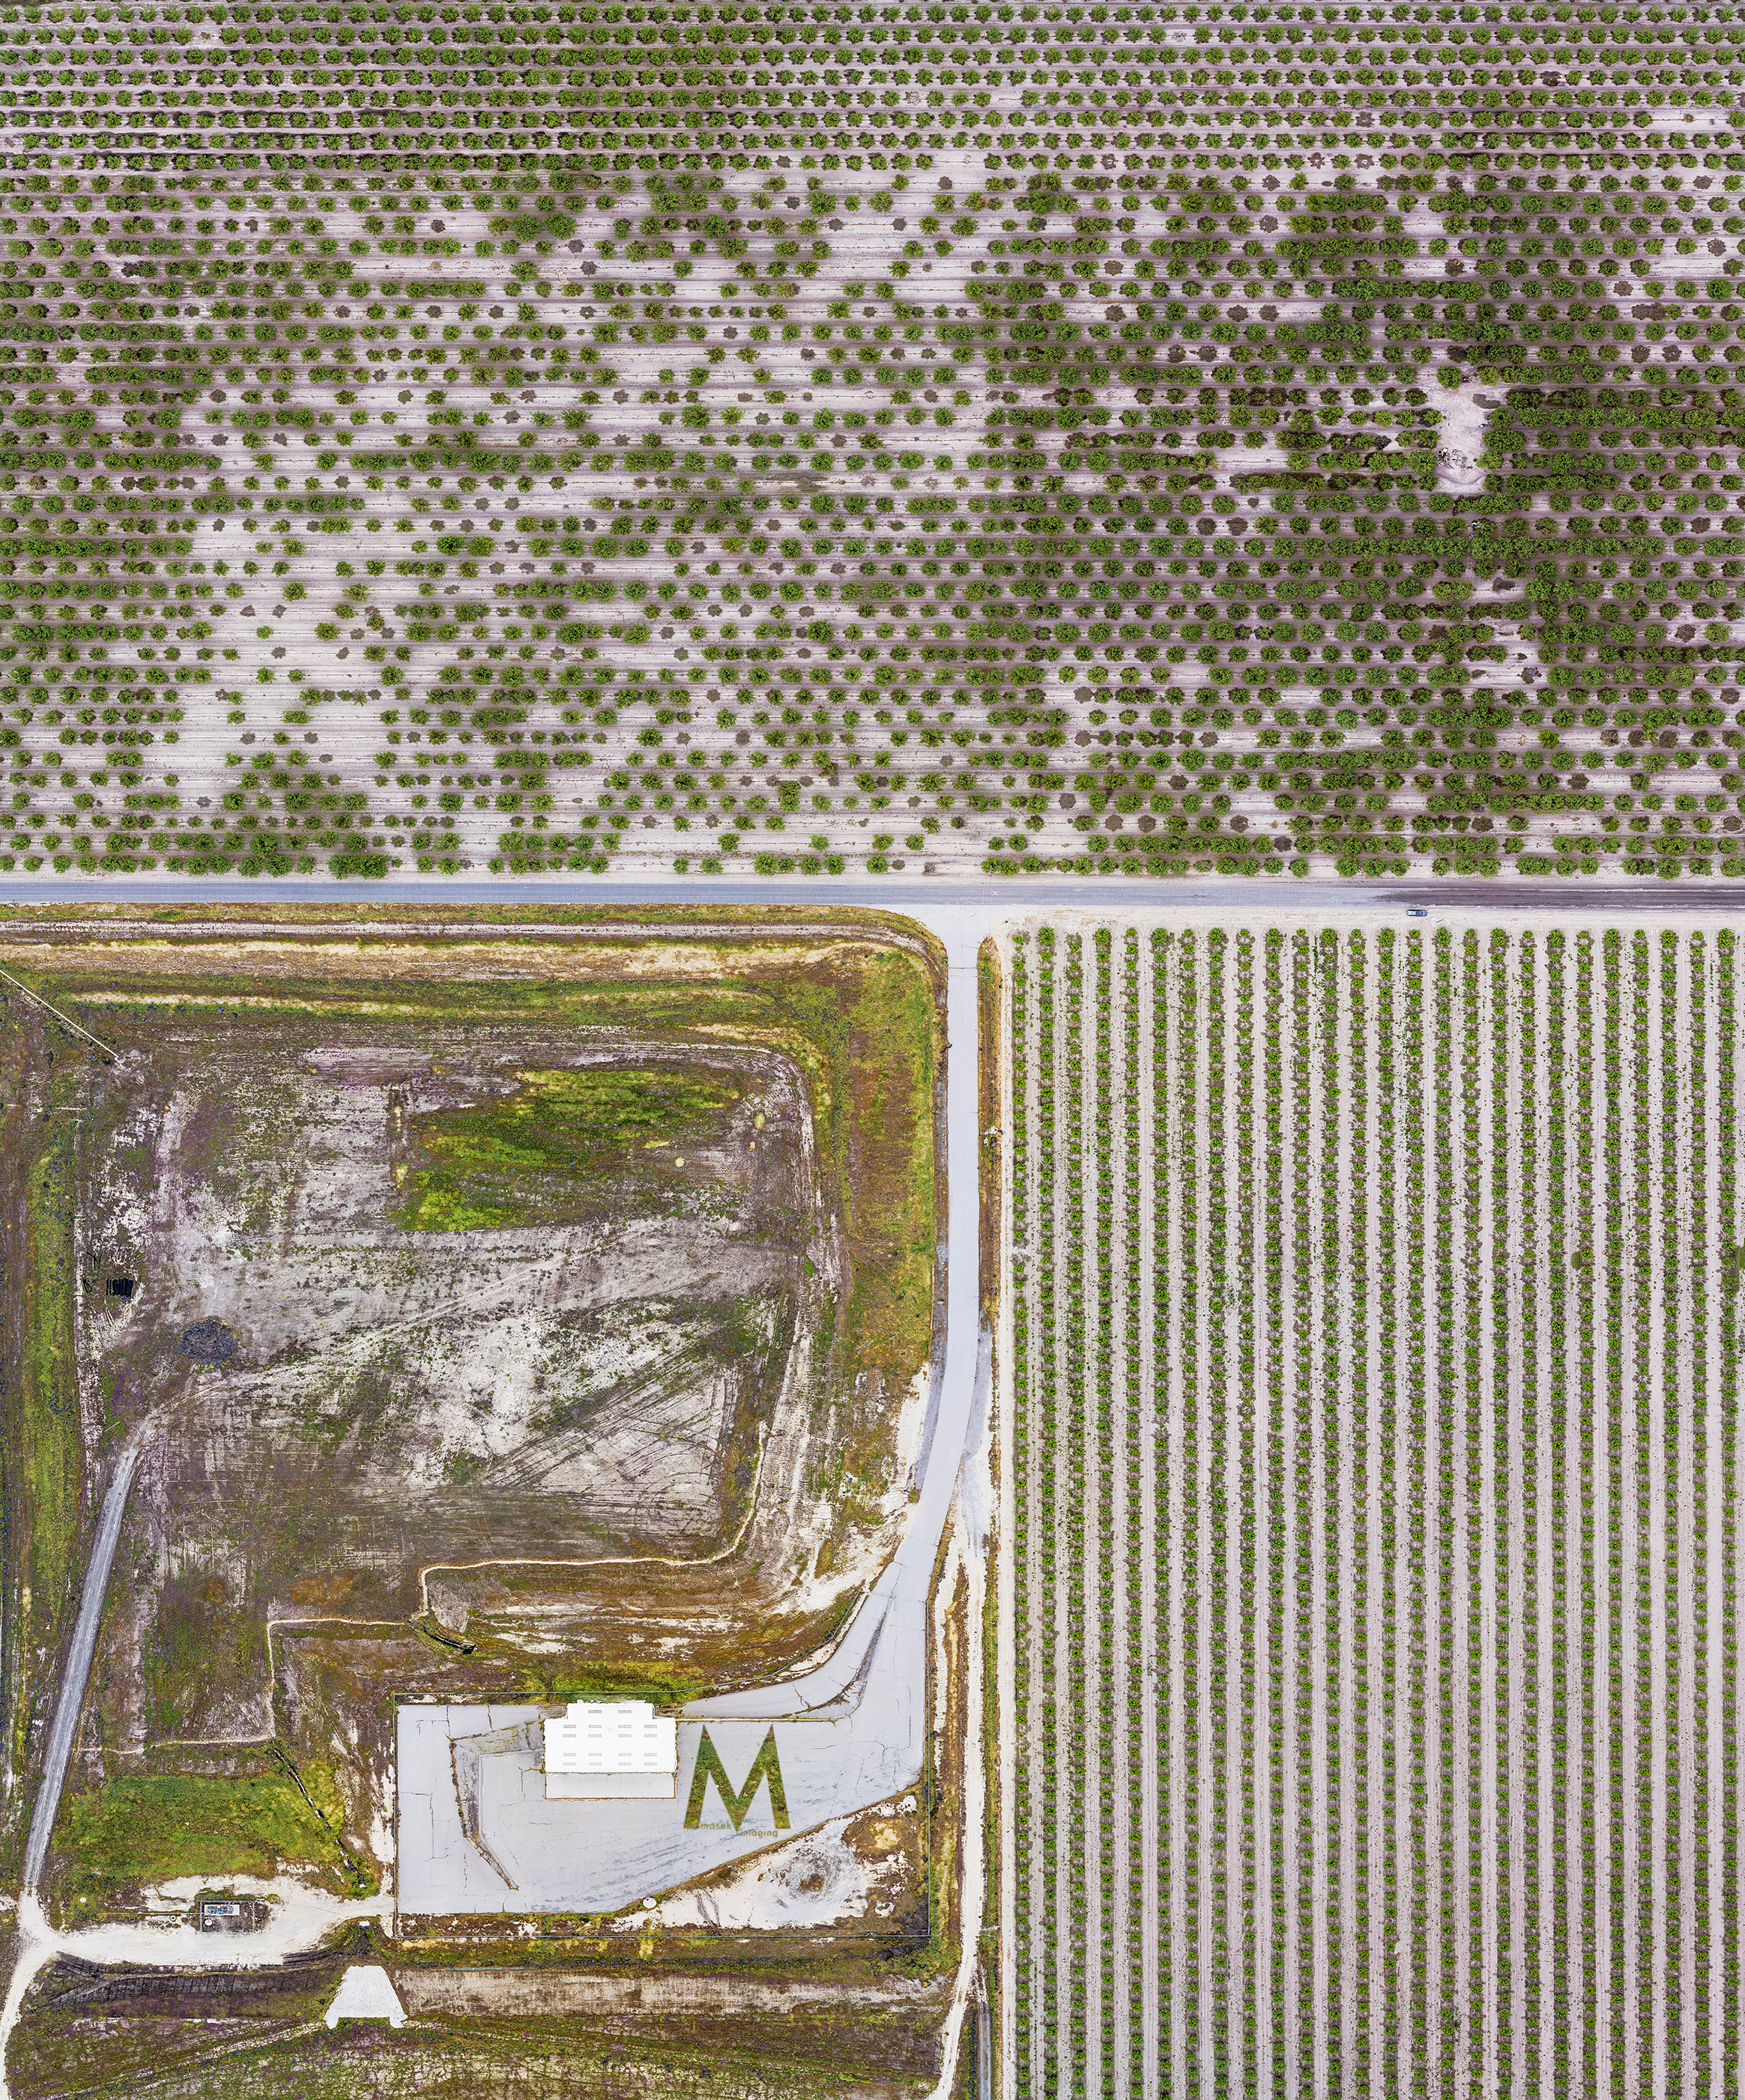 Composite photograph (about 280 pictures) of almond tree farm.